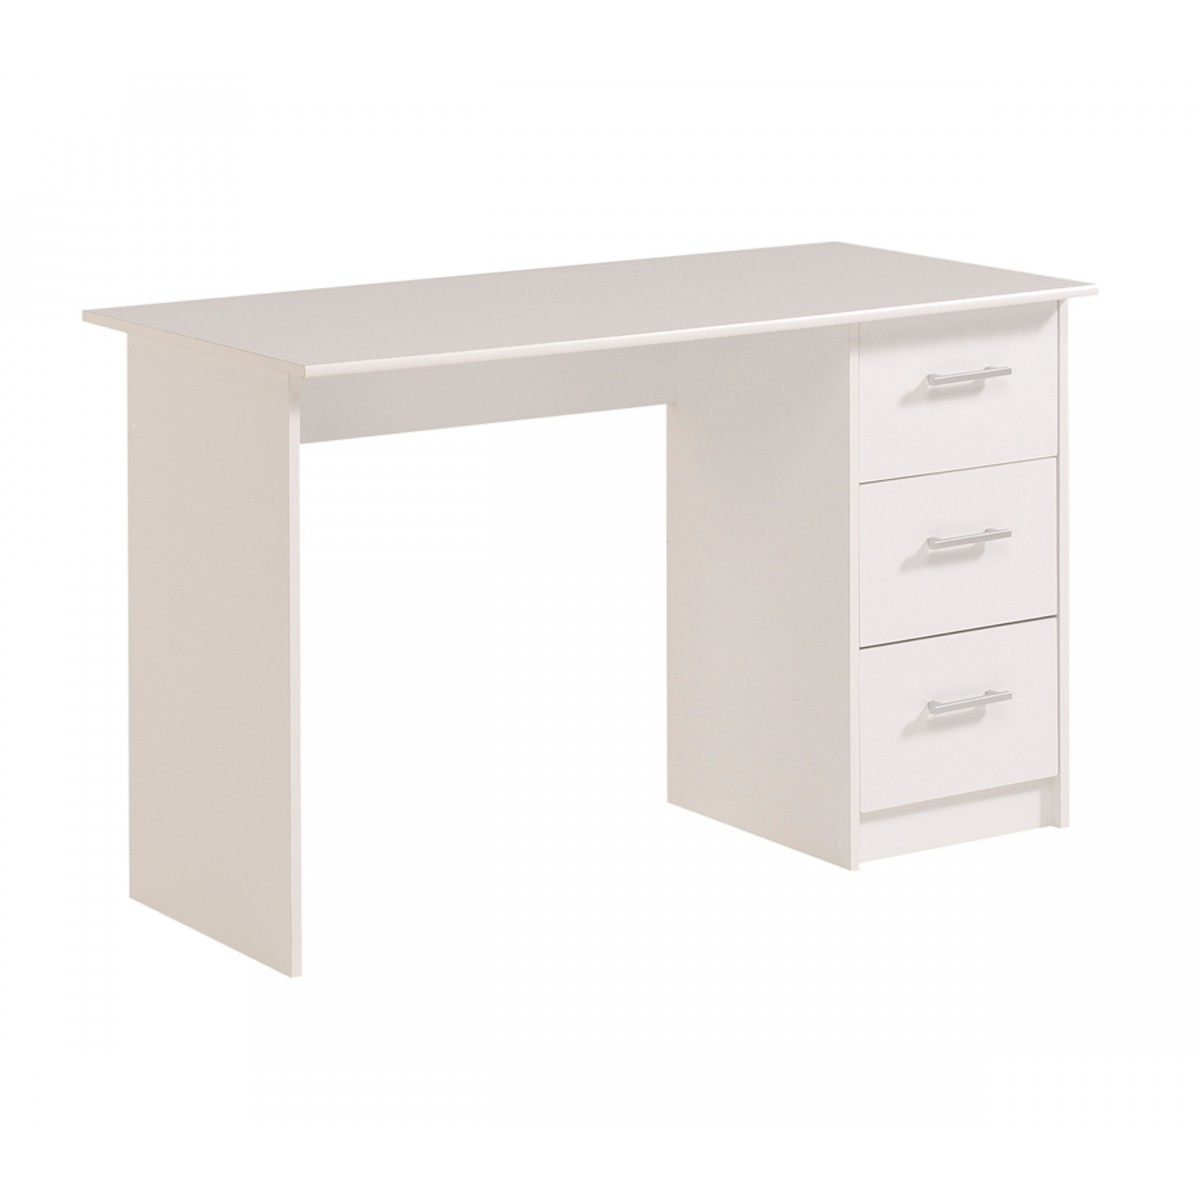 Someo bureau en bois blanc m g ve june for Bureau en bois blanc